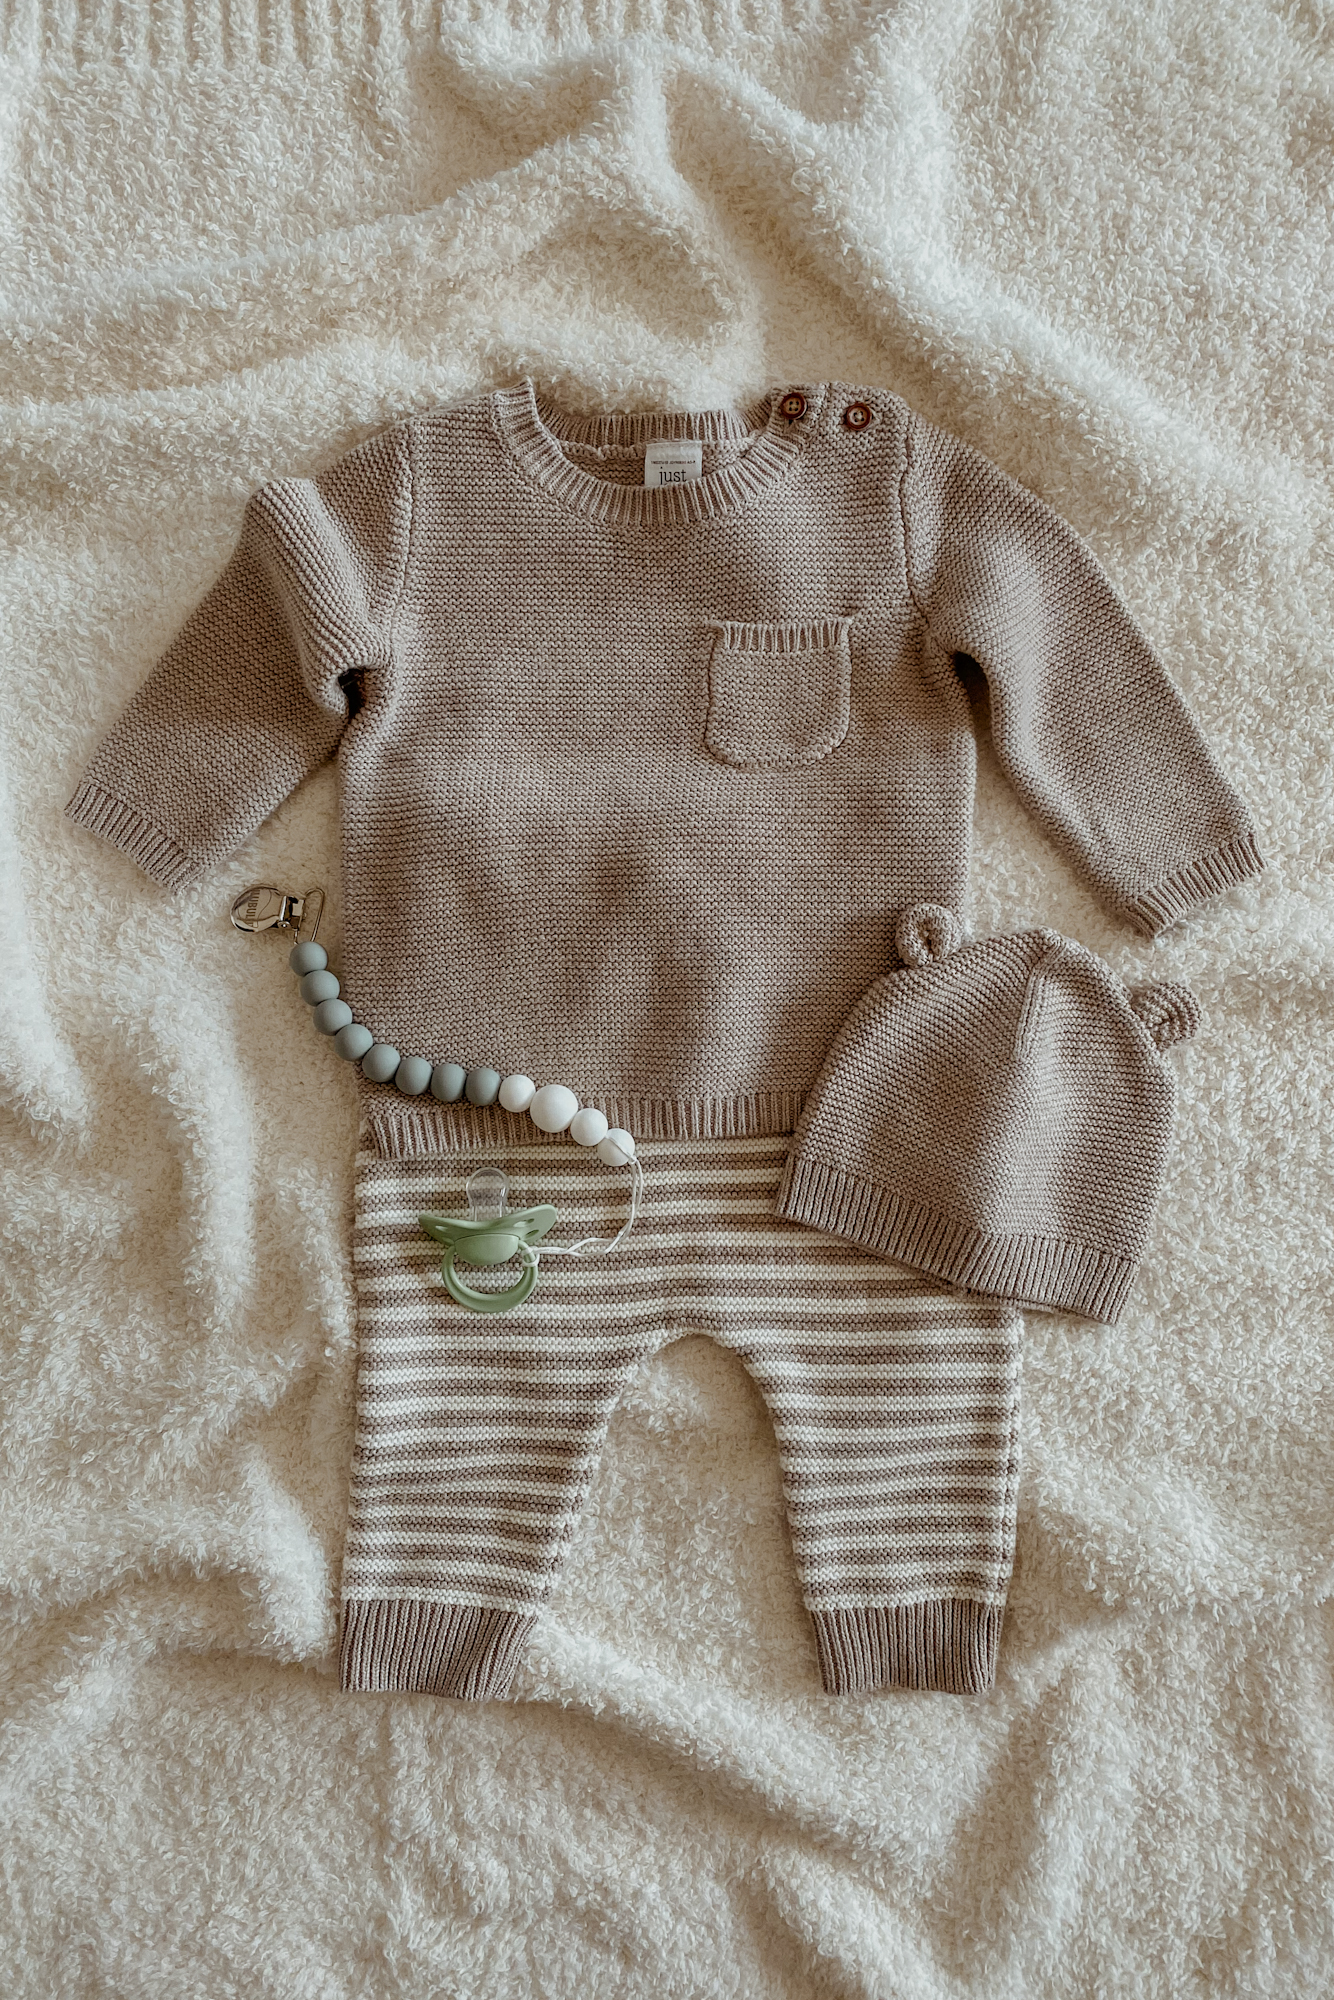 A knit gender neutral baby outfit flatlay.